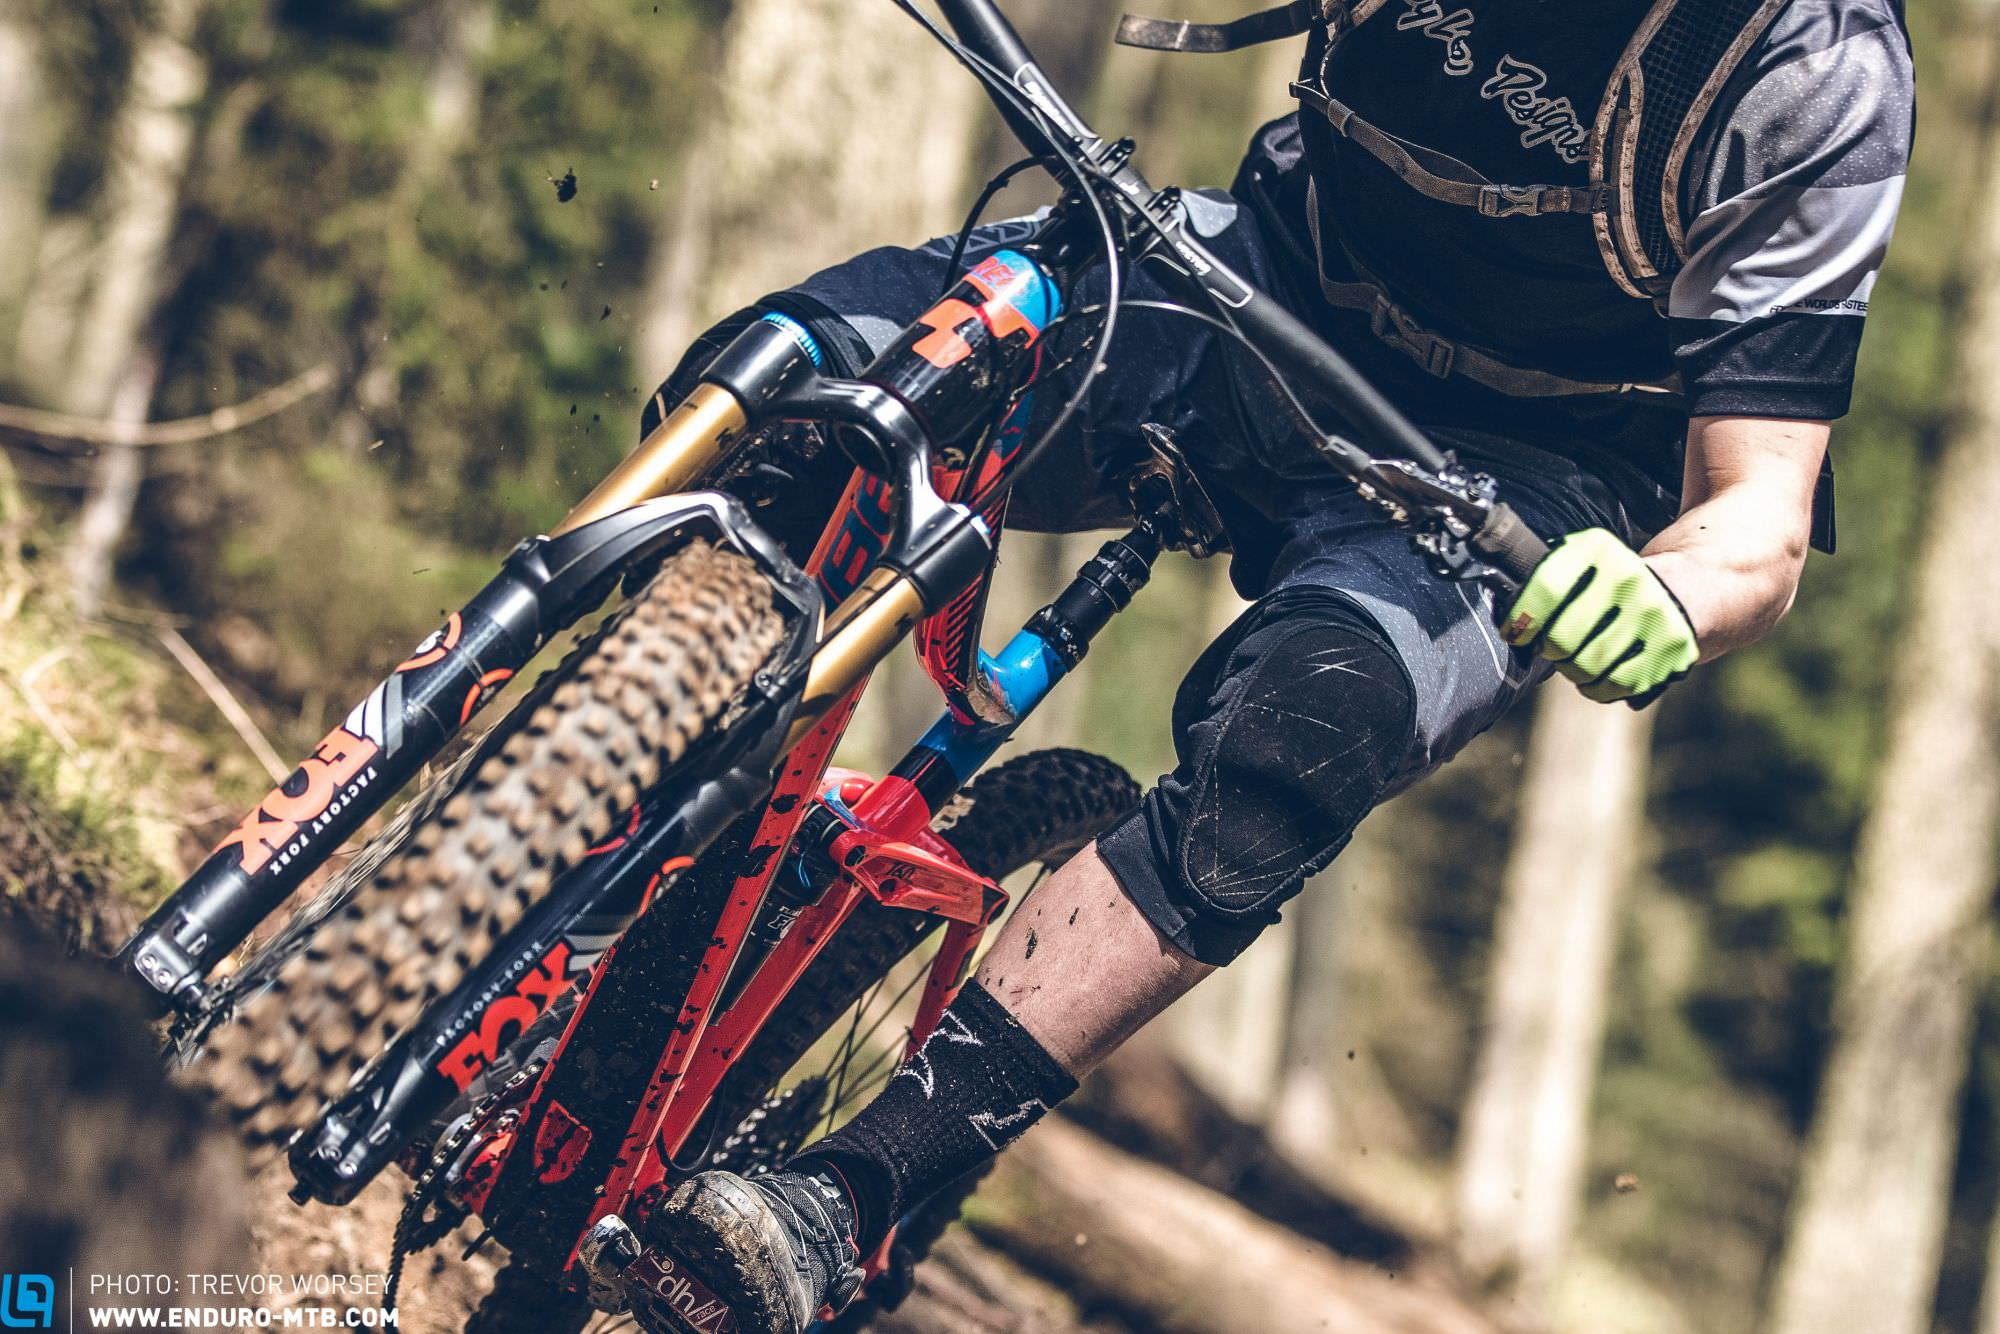 Tune It Up: How to adjust your Front Suspension | ENDURO Mountainbike Magazine